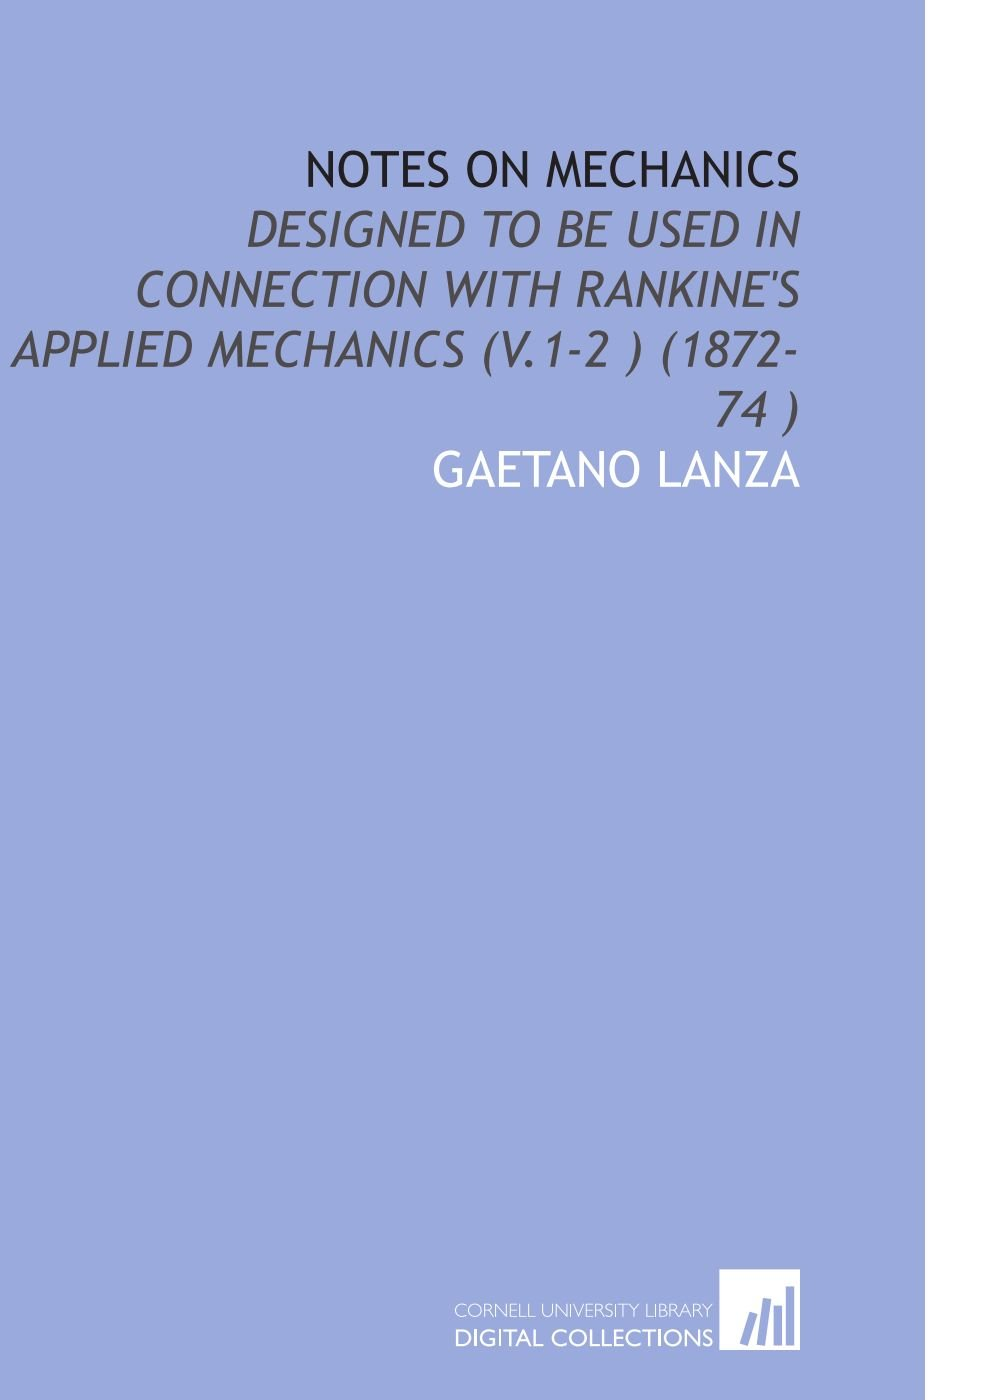 Notes on Mechanics: Designed to Be Used in Connection With Rankine's Applied Mechanics (V.1-2 ) (1872-74 ) ebook